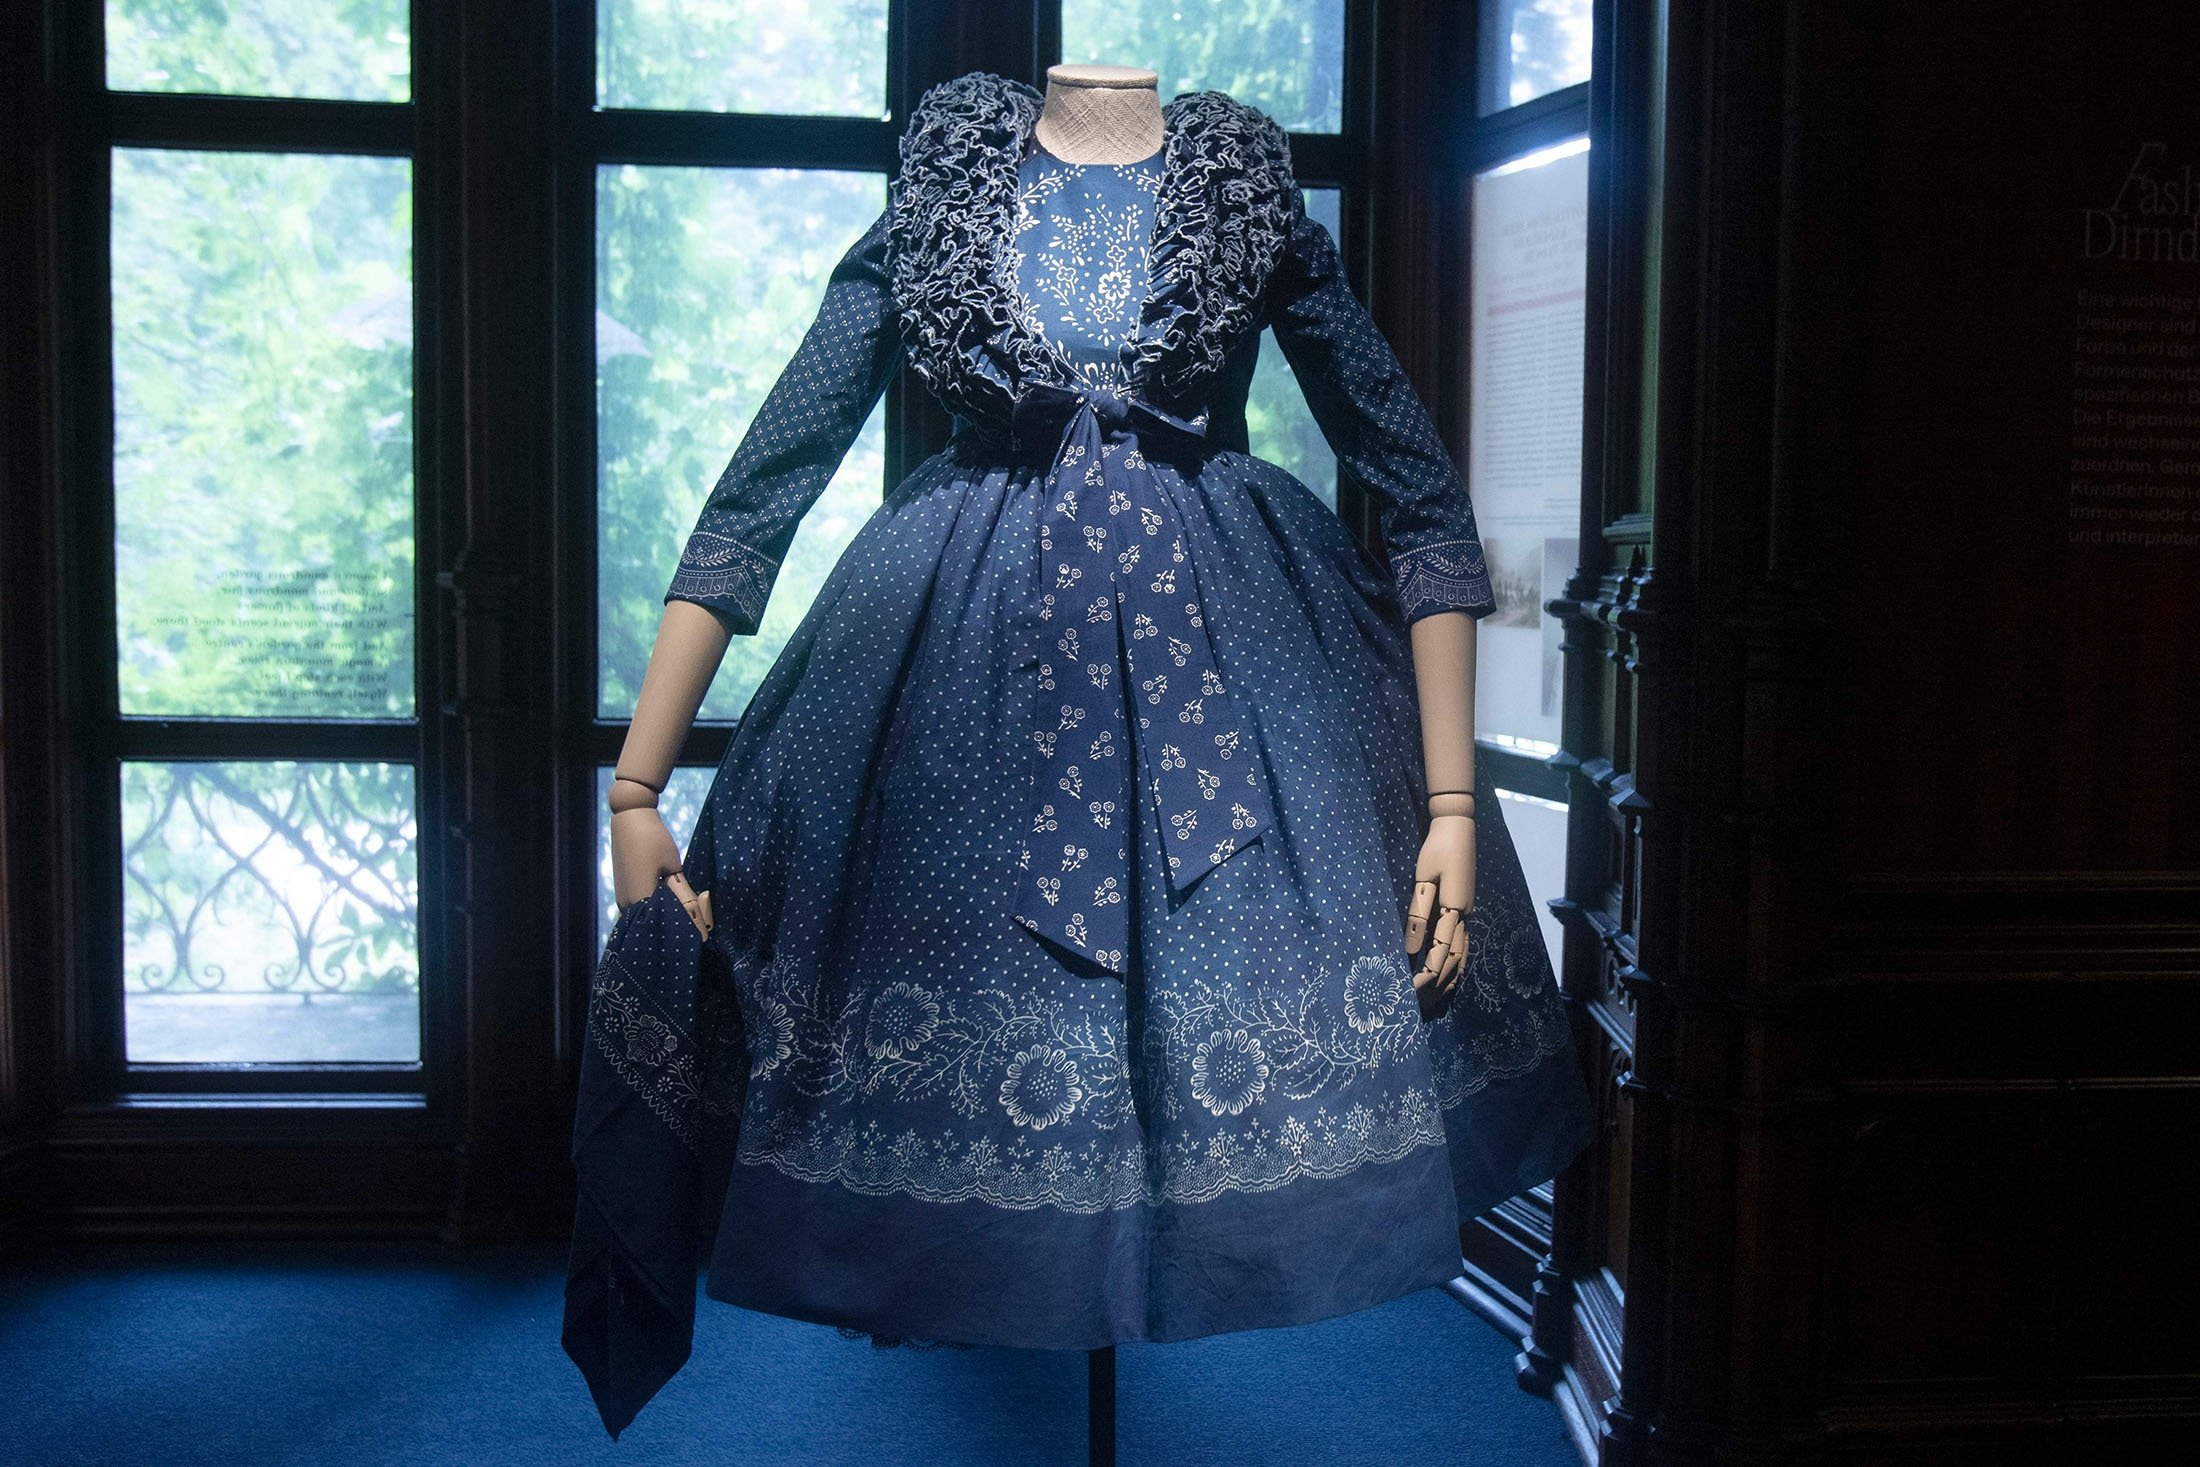 A dirndl dress is on display at the exhibition 'Dirndl – Tradition goes fashion' at the Mamorschloessl palace in Bad Ischl, Upper Austria, June 24, 2021. (AFP Photo)